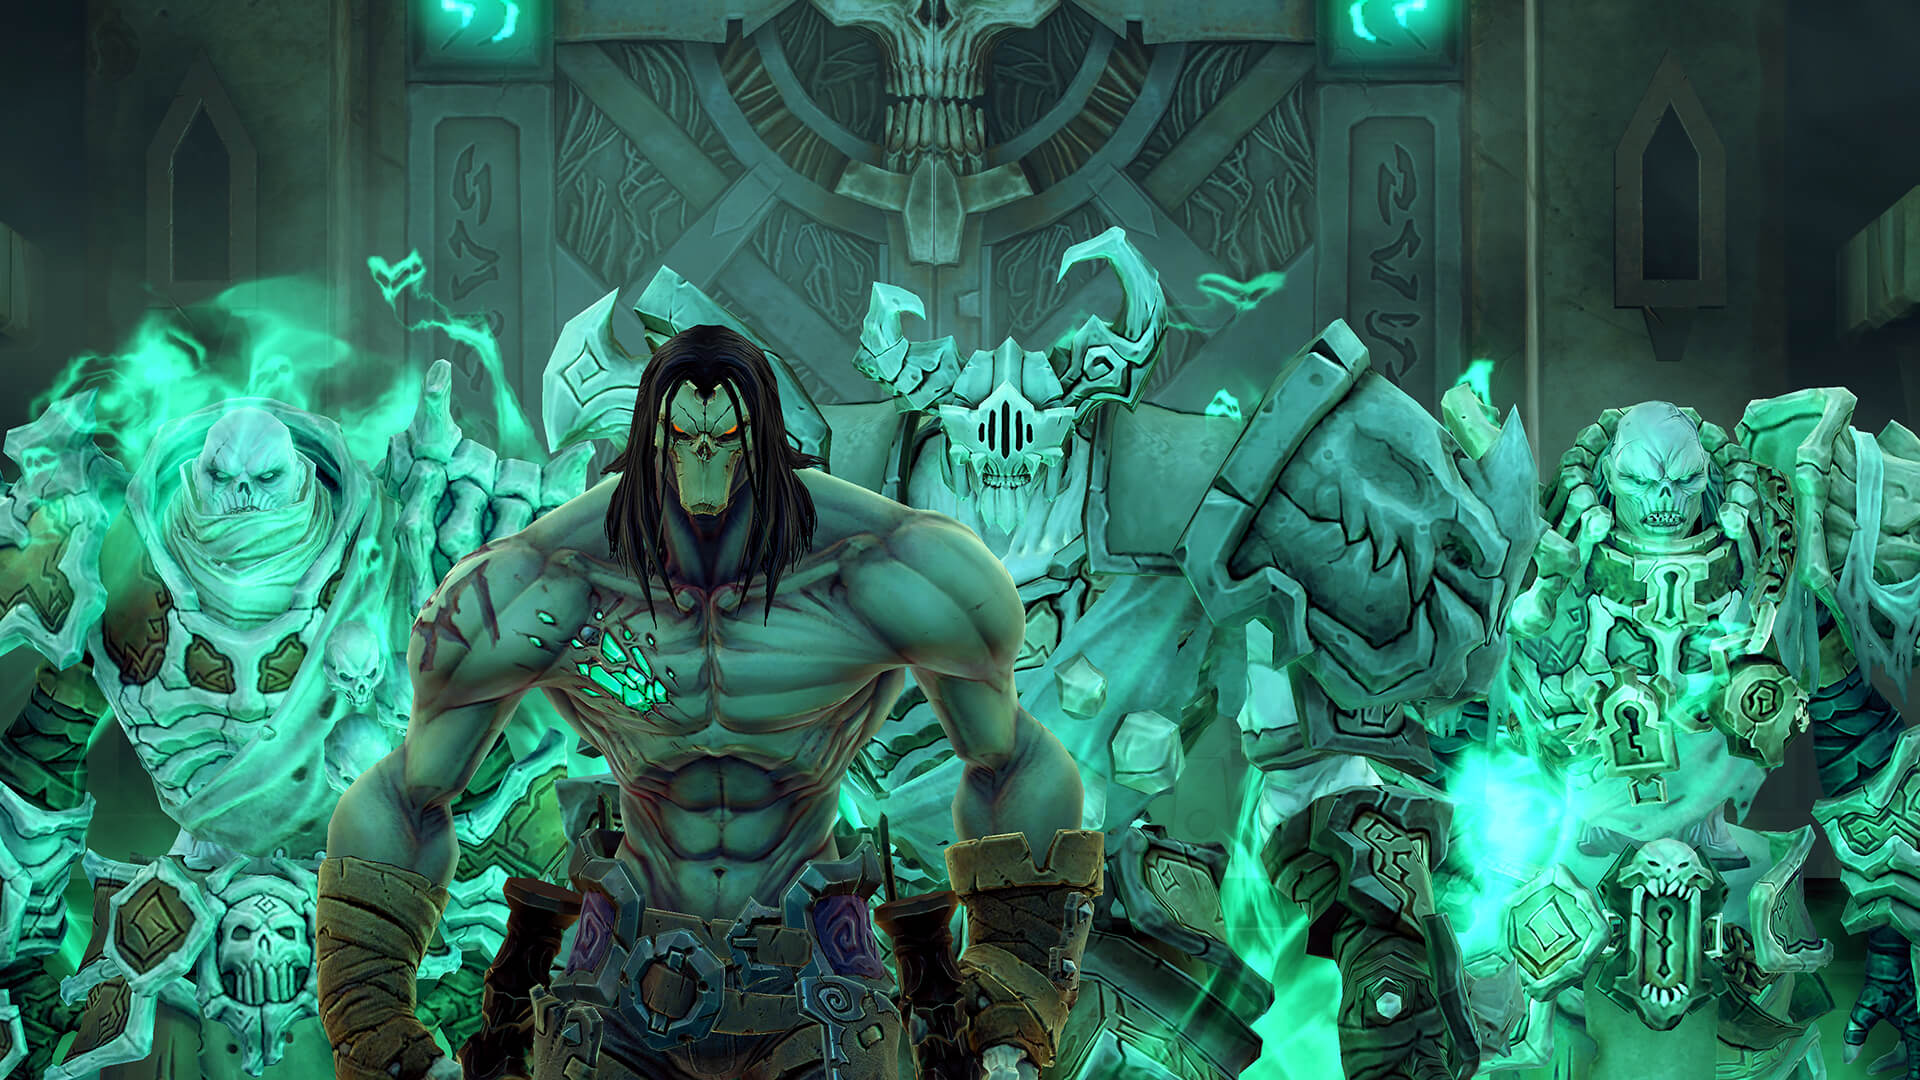 Darksiders Ii Deathinitive Edition For Ps4 Xb1 Reviews Opencritic